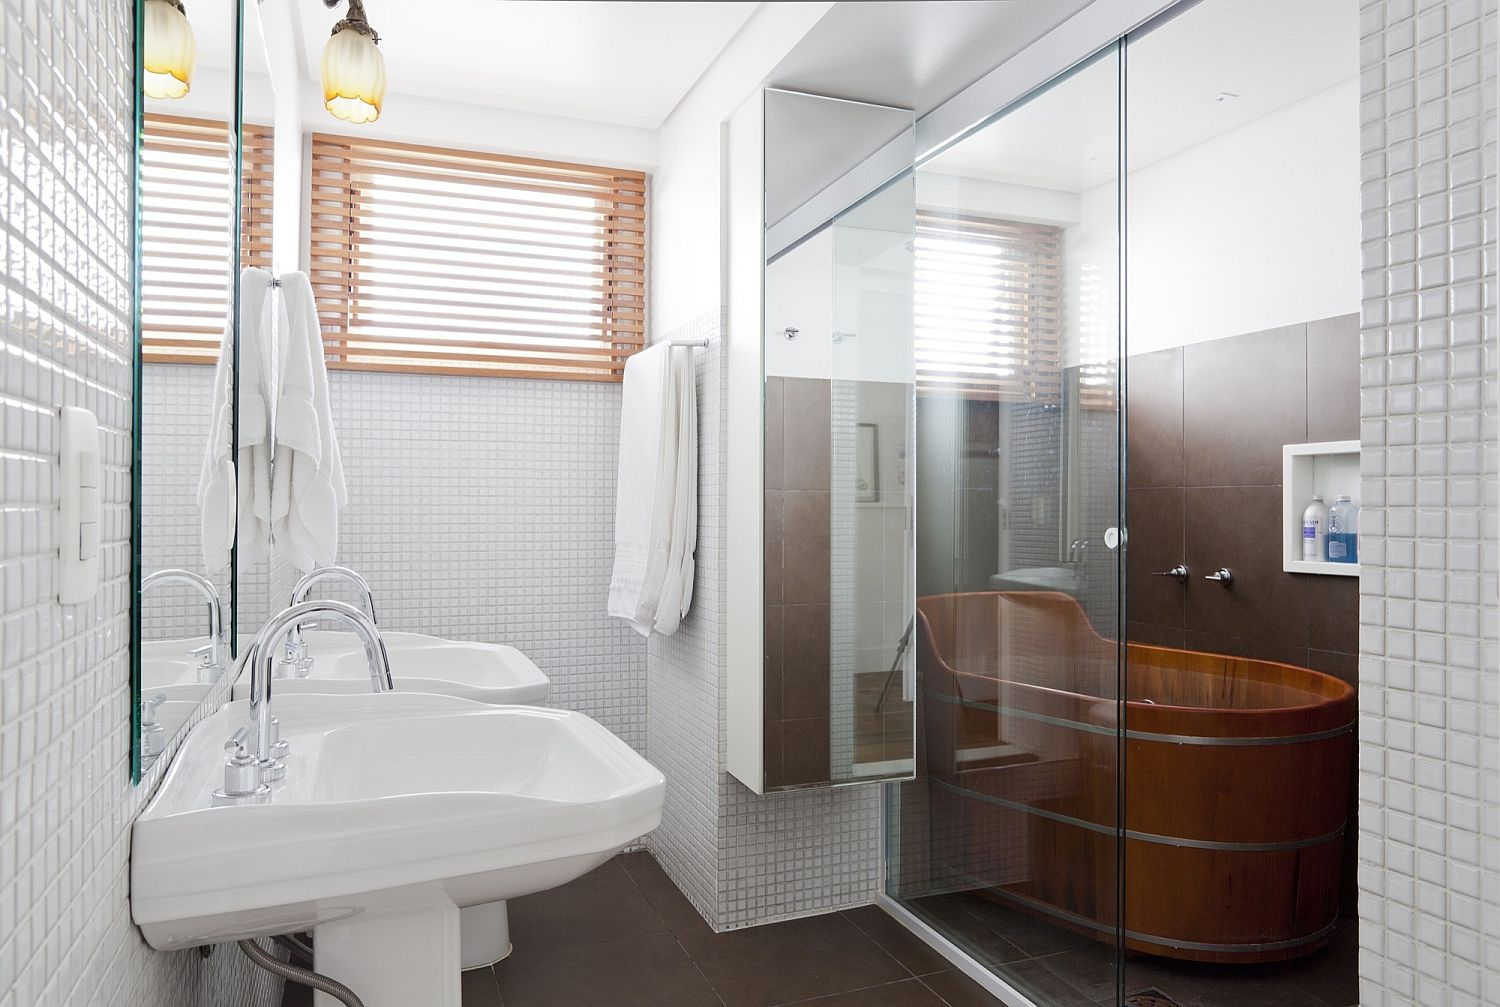 Beautiful-wooden-bathtub-steals-the-show-in-this-white-bathroom